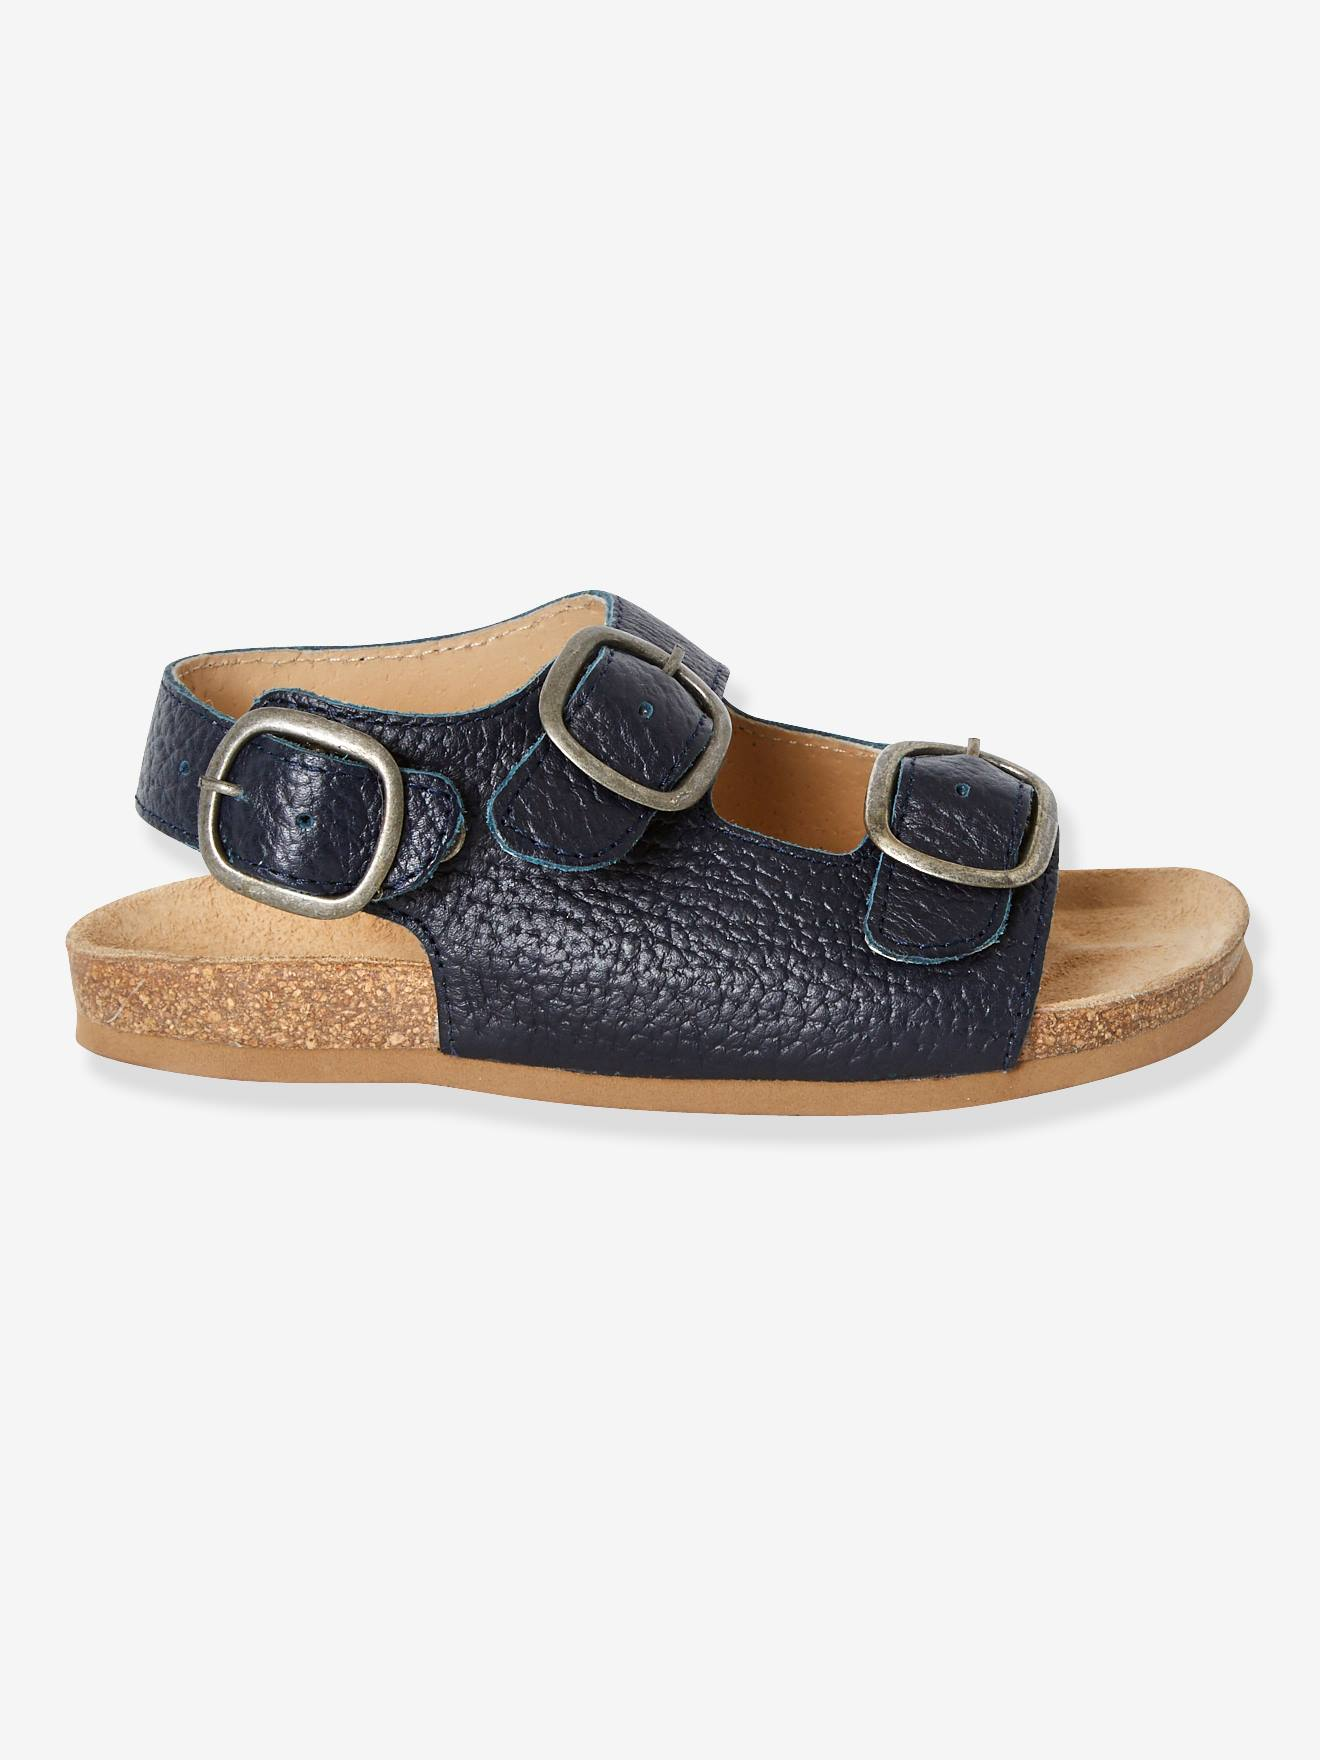 Dark For Anatomic Leather Blue Sandals Boys SolidShoes NP08nOwkX